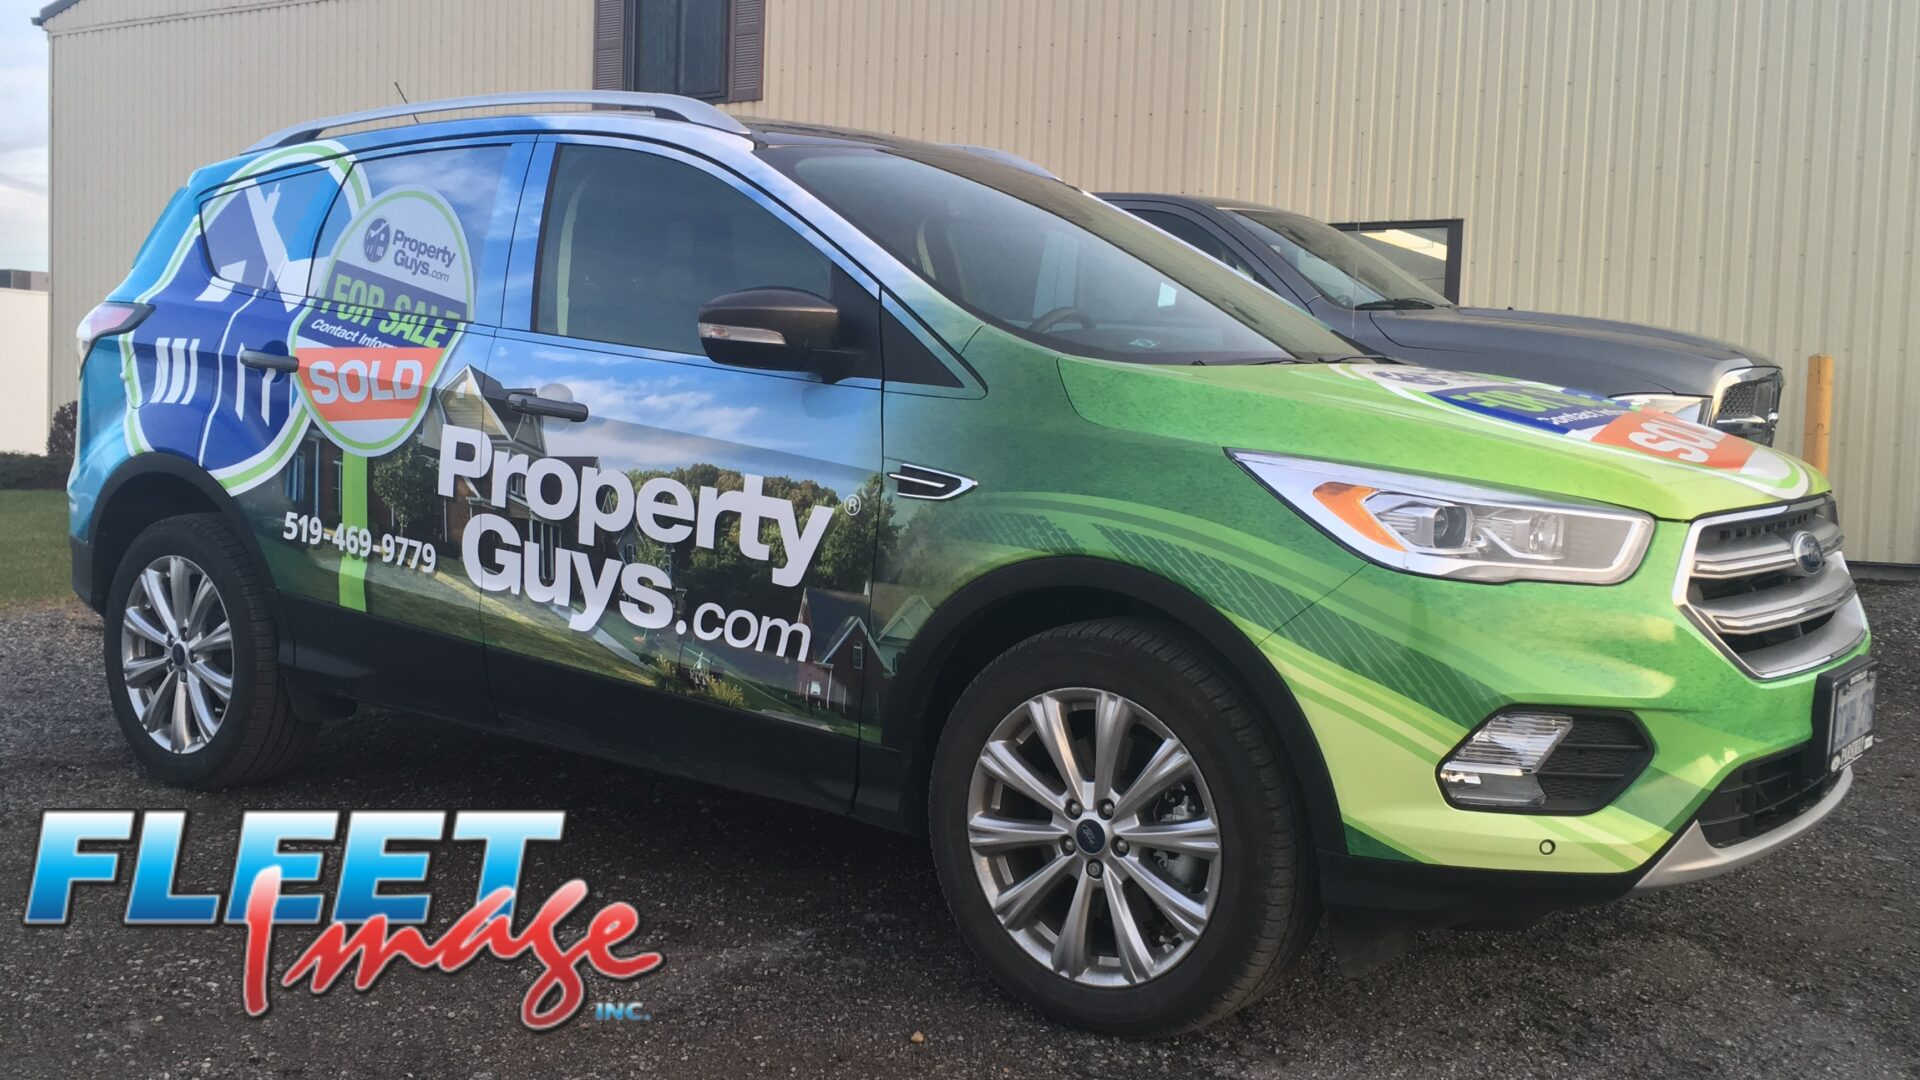 Vehicle with a PropertyGuys.com decal sticker